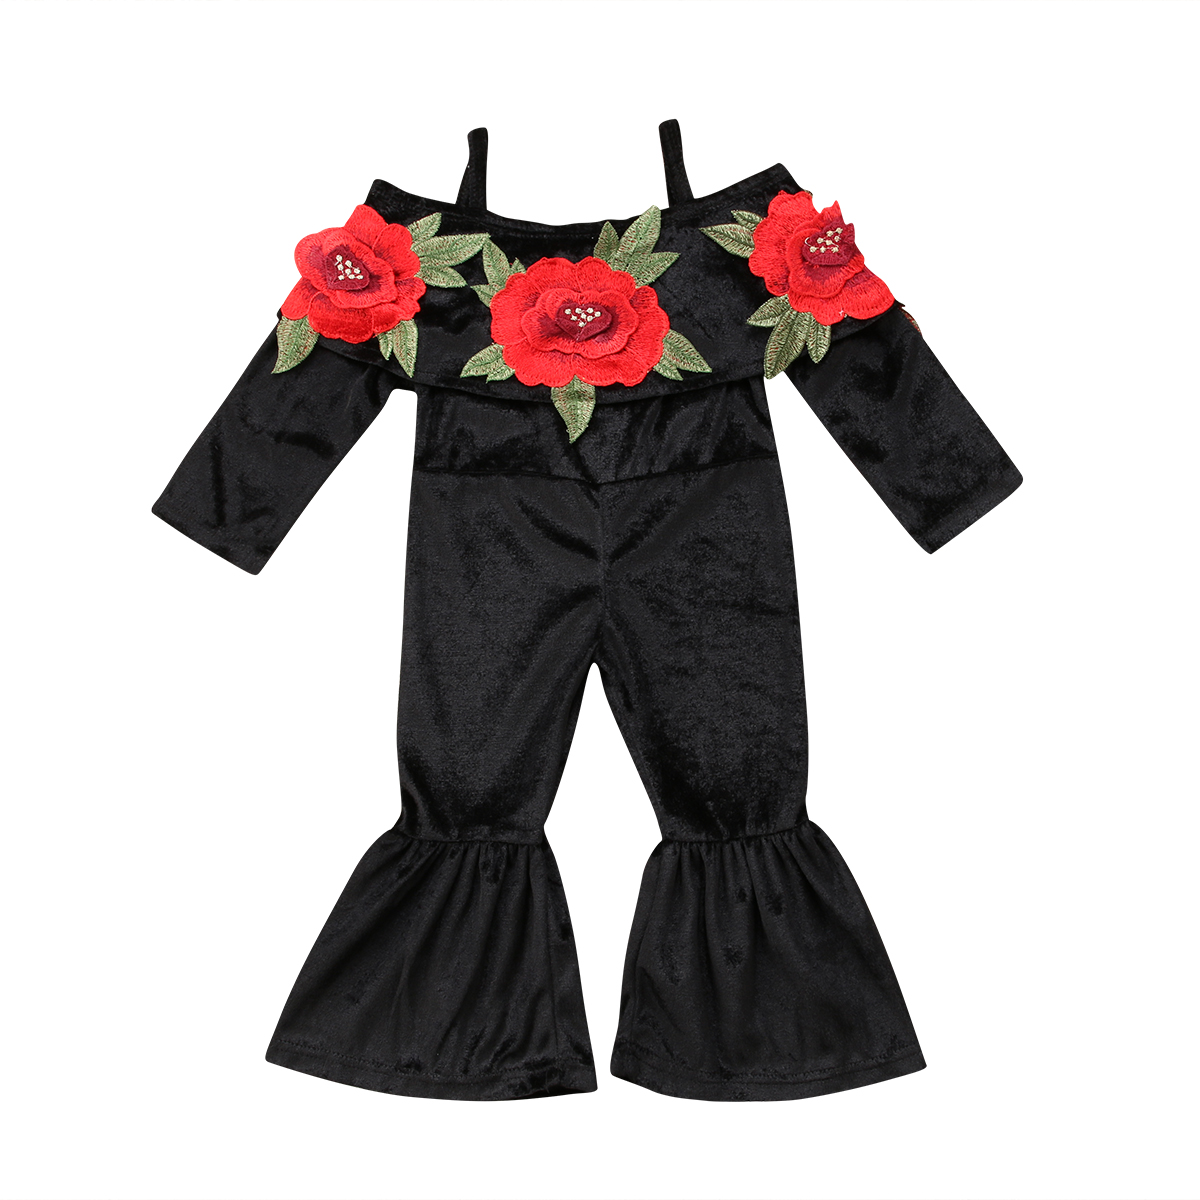 Women's Bags Fashion Toddler Kids Baby Girls Flower Romper Suspender Dress Jumpsuit Playsuit With A Long Standing Reputation